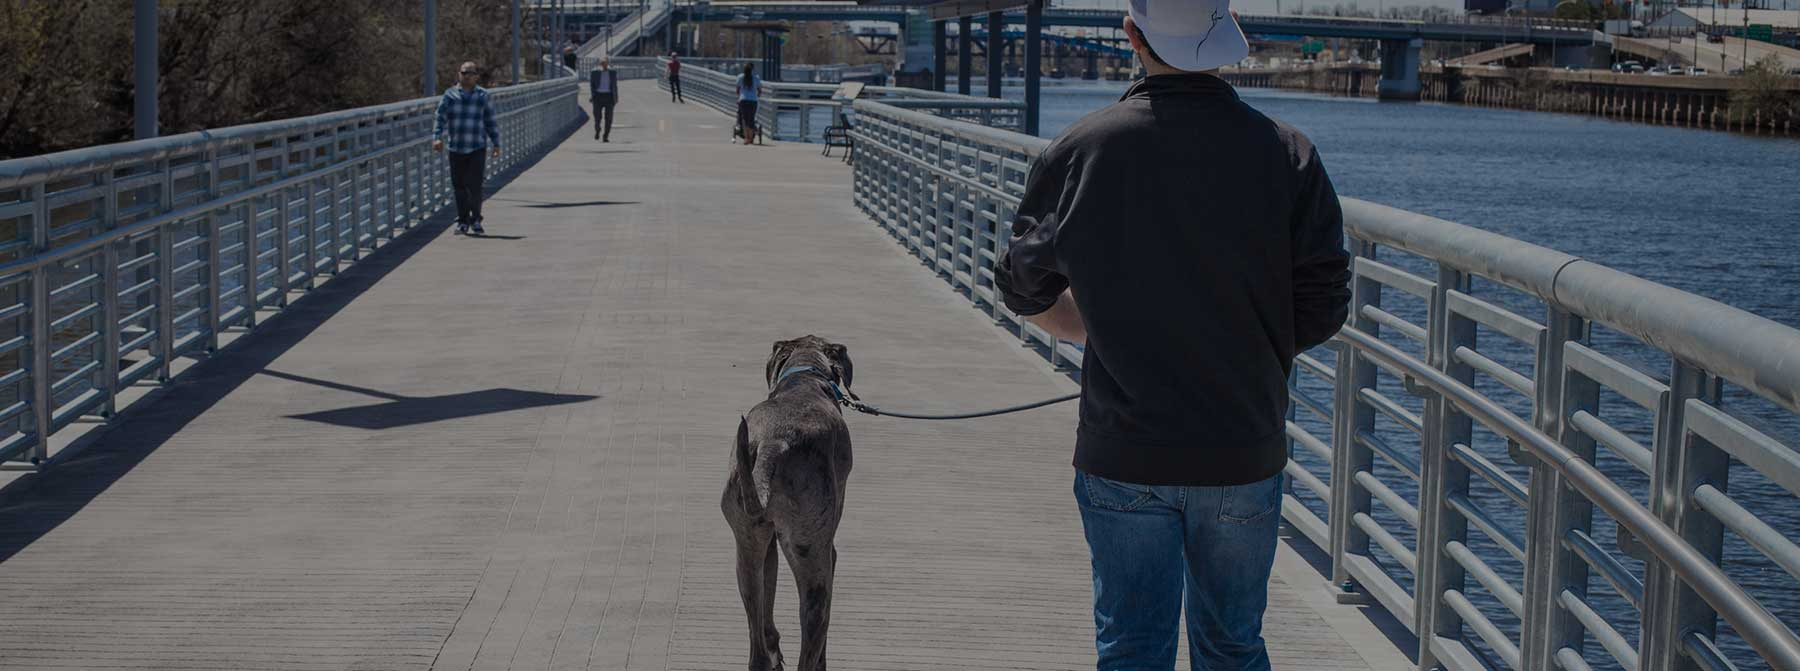 Dog Friendly Philly: Schuylkill River Park